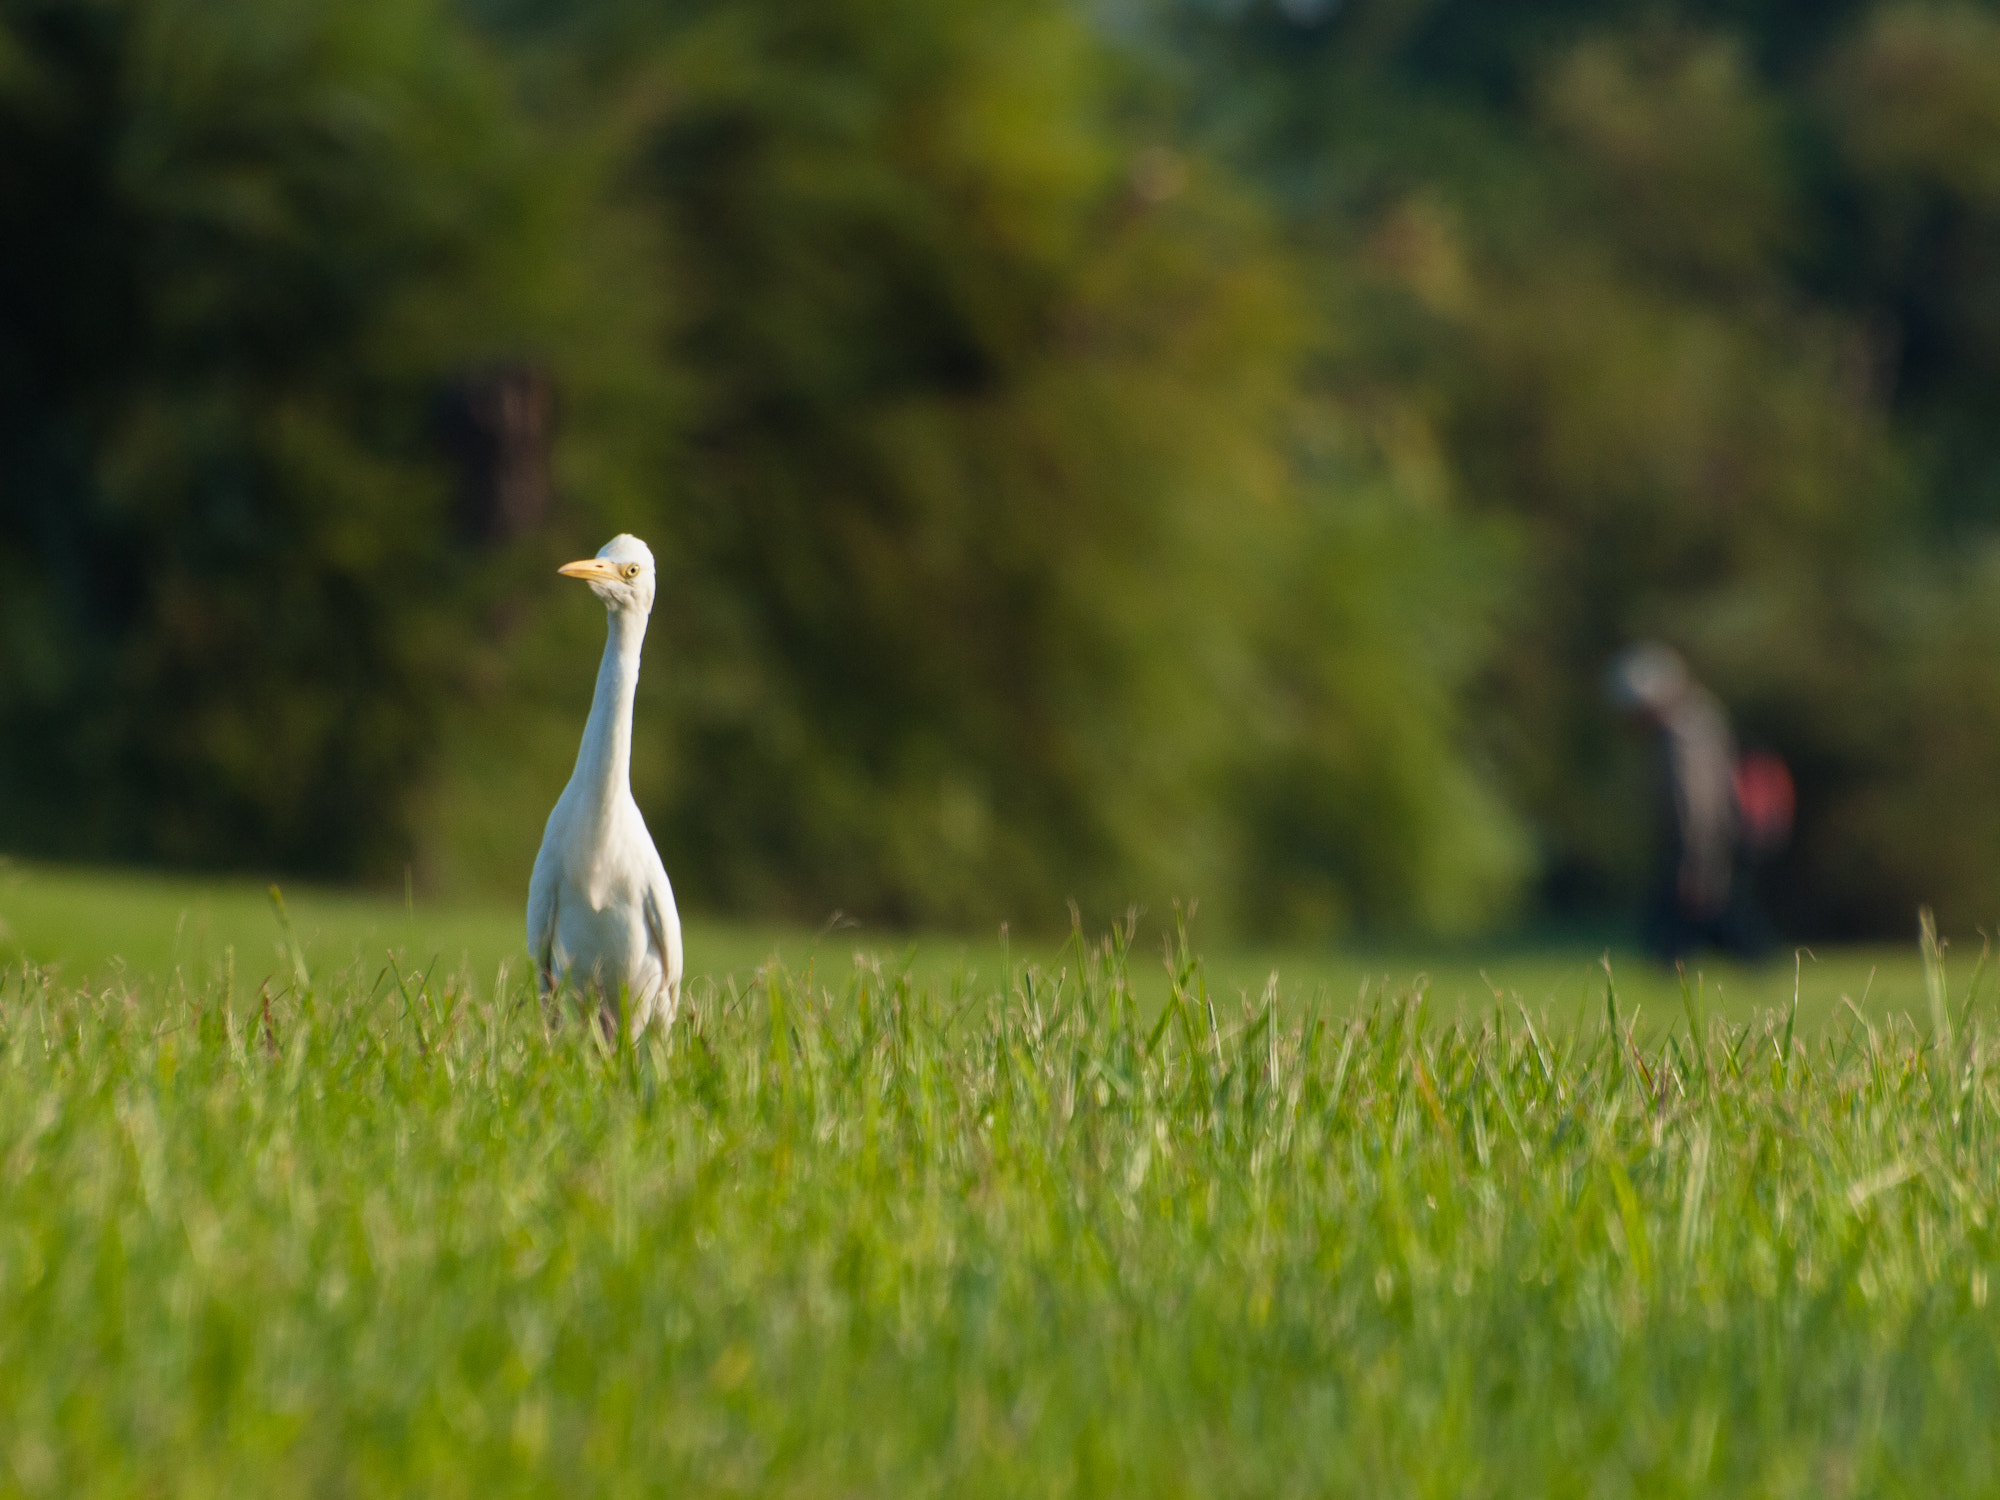 Photograph Wandering Egret by William Lo on 500px